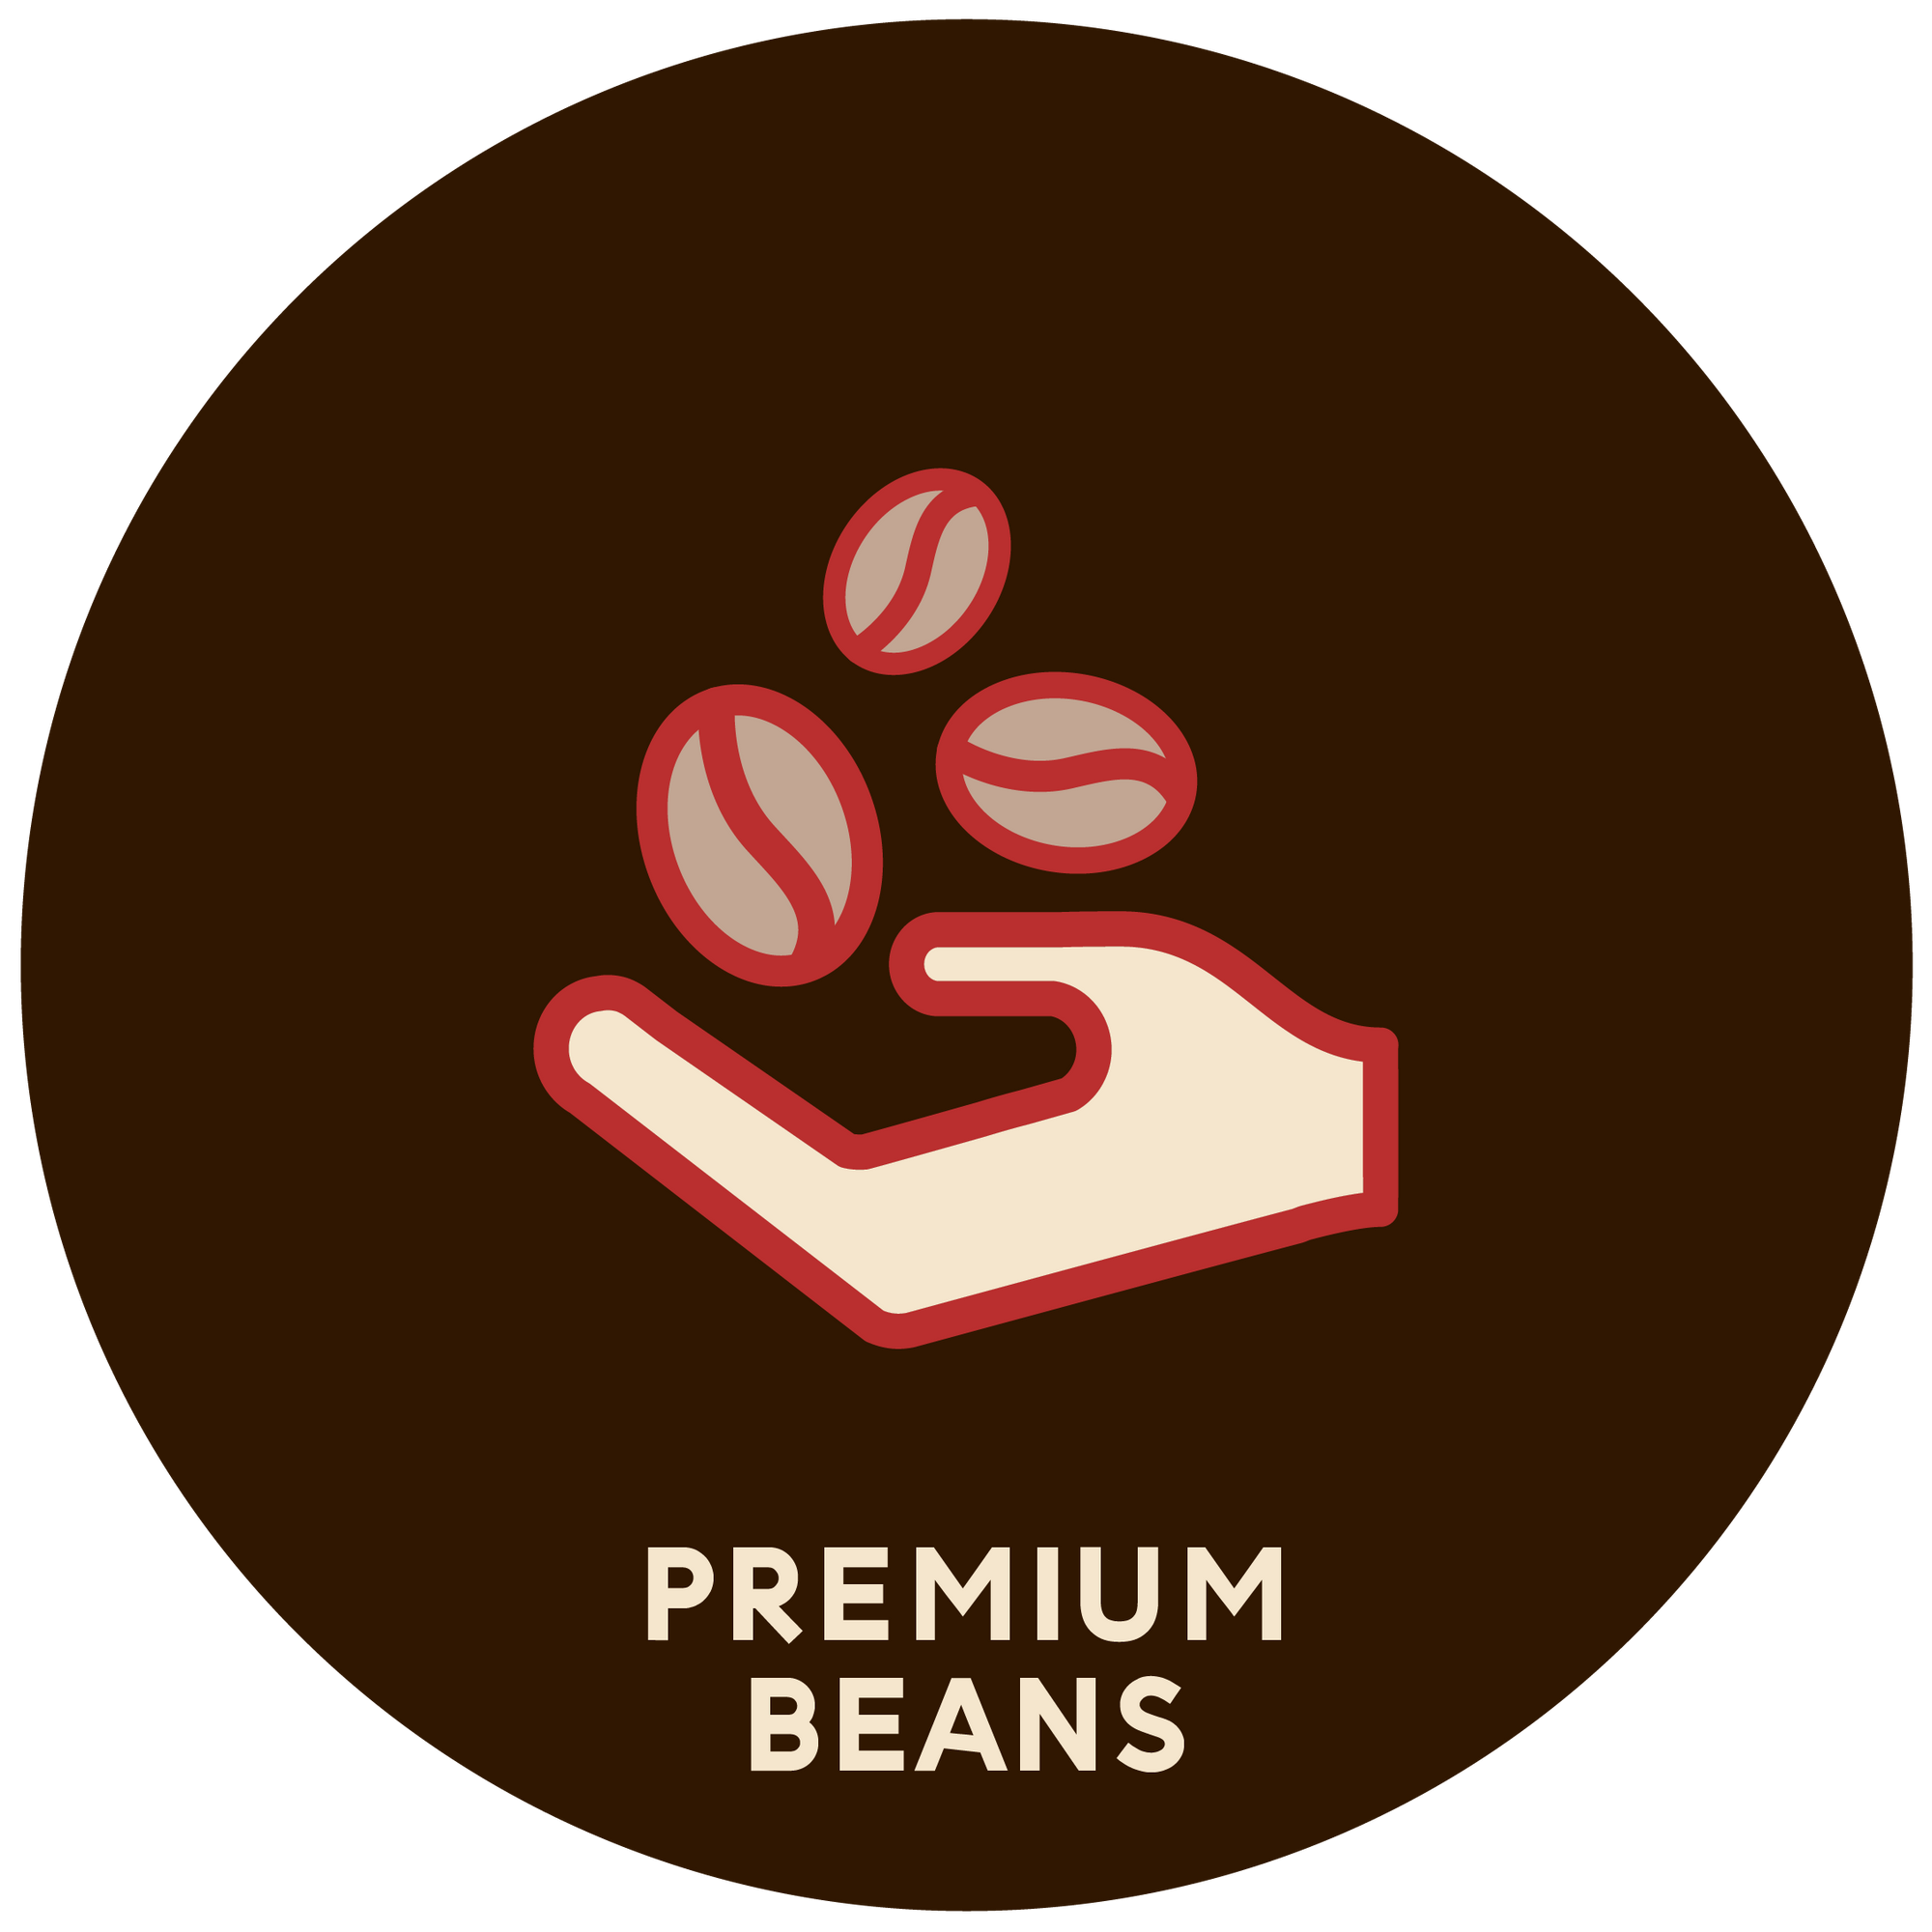 Espresso Canada logo showing they carry premium Caffé Nostro Beans specifically roasted for use in superautomatic espresso machines